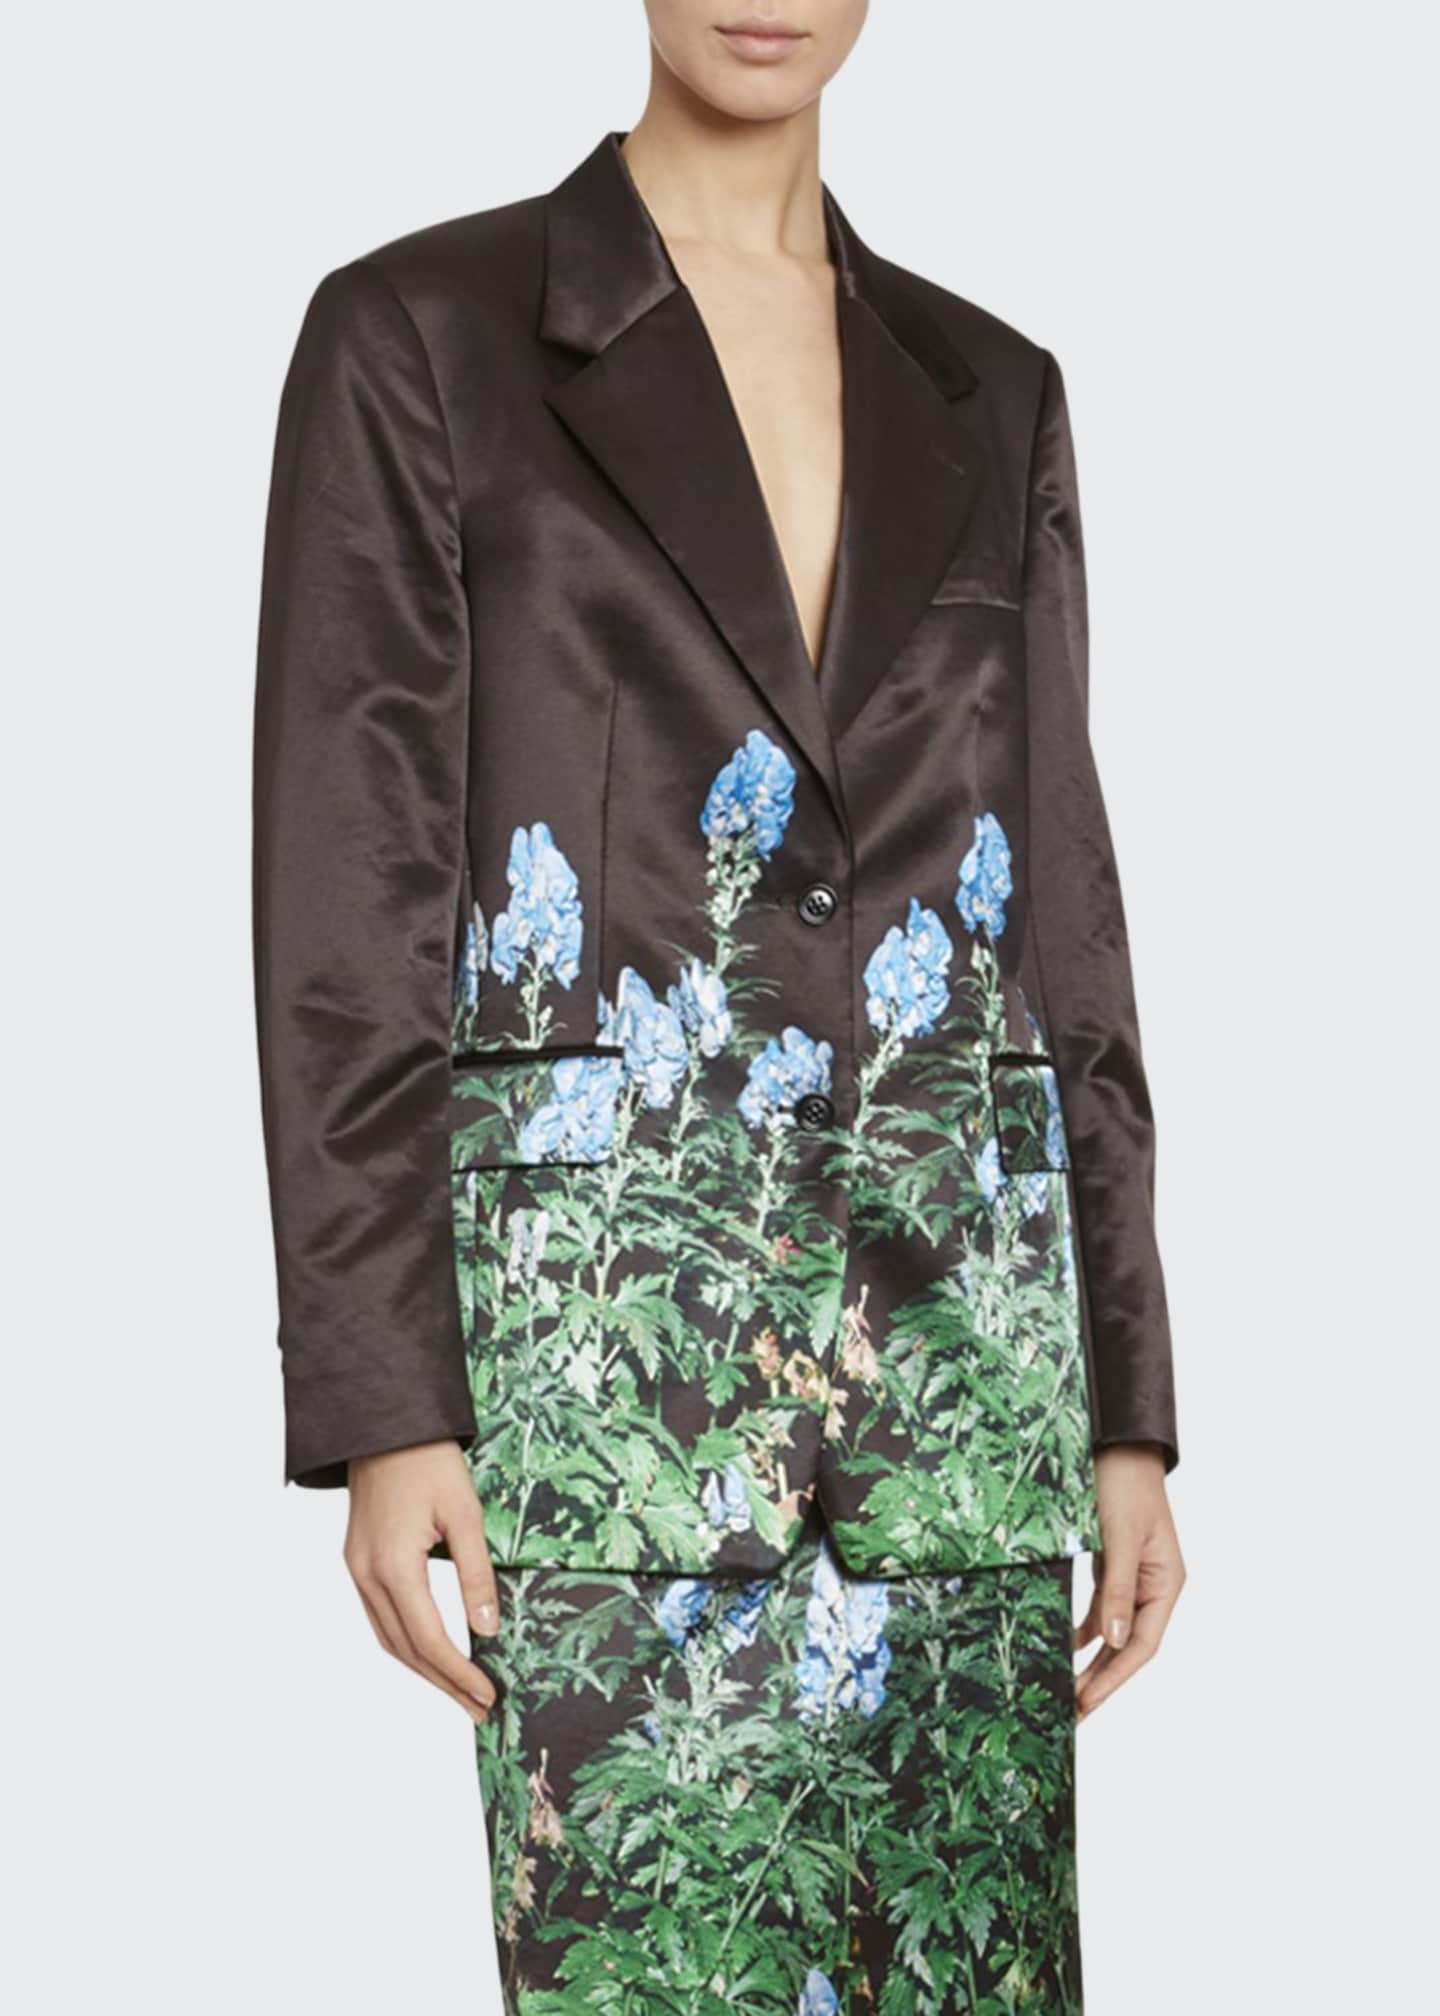 Dries Van Noten Floral-Print Satin Blazer